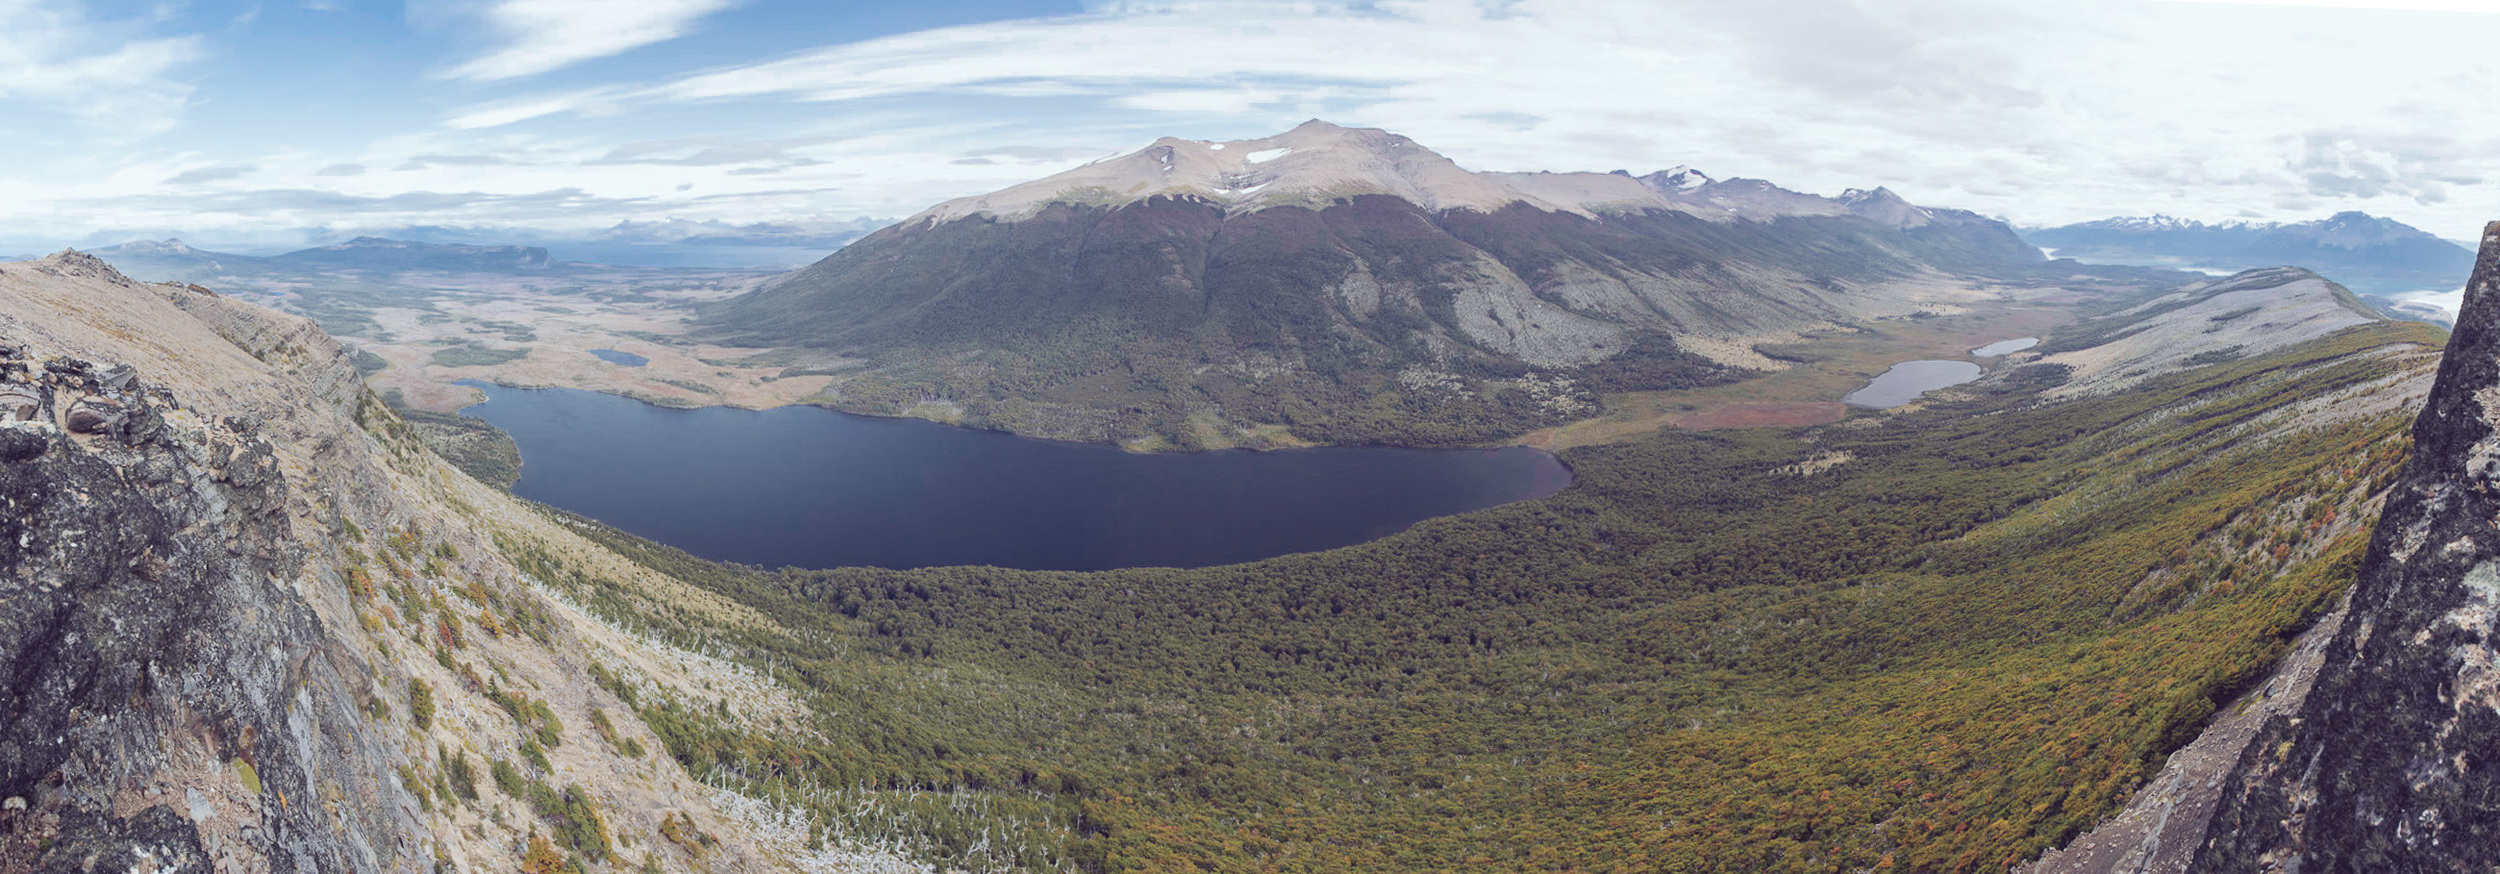 View from the western flank of Cerro Ballena down towards the lagoon.